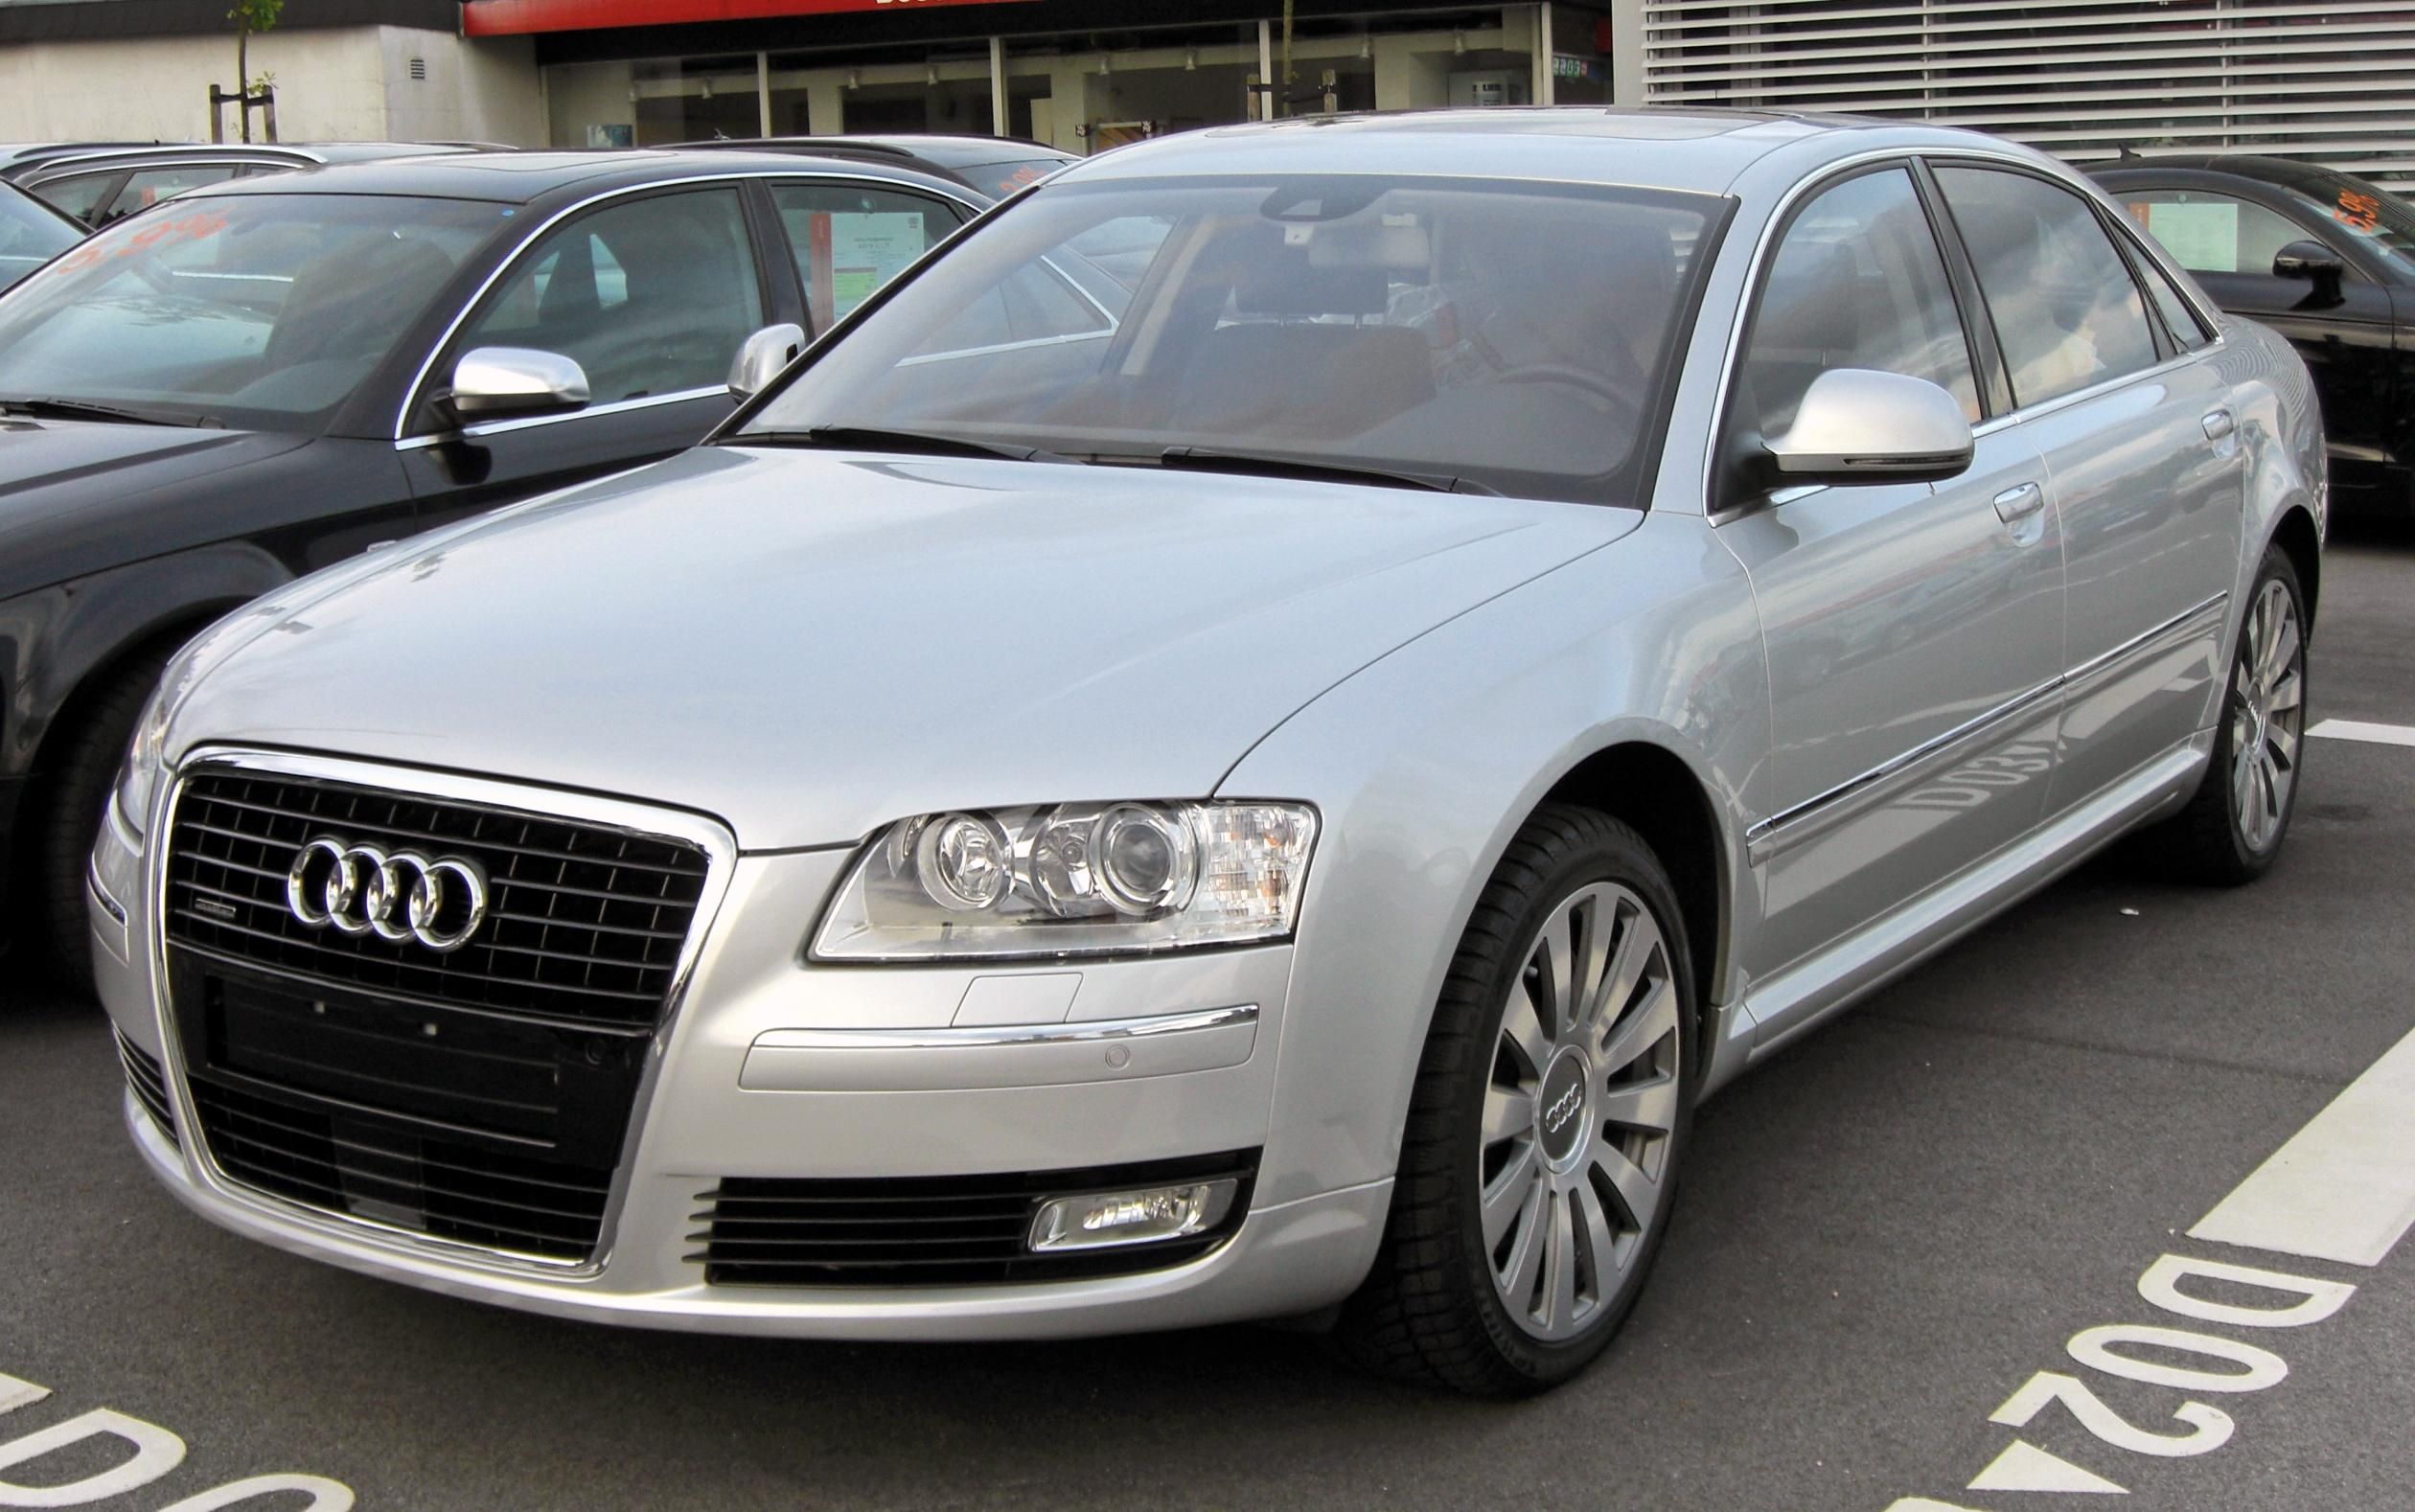 2006 audi a8 4e pictures information and specs auto. Black Bedroom Furniture Sets. Home Design Ideas